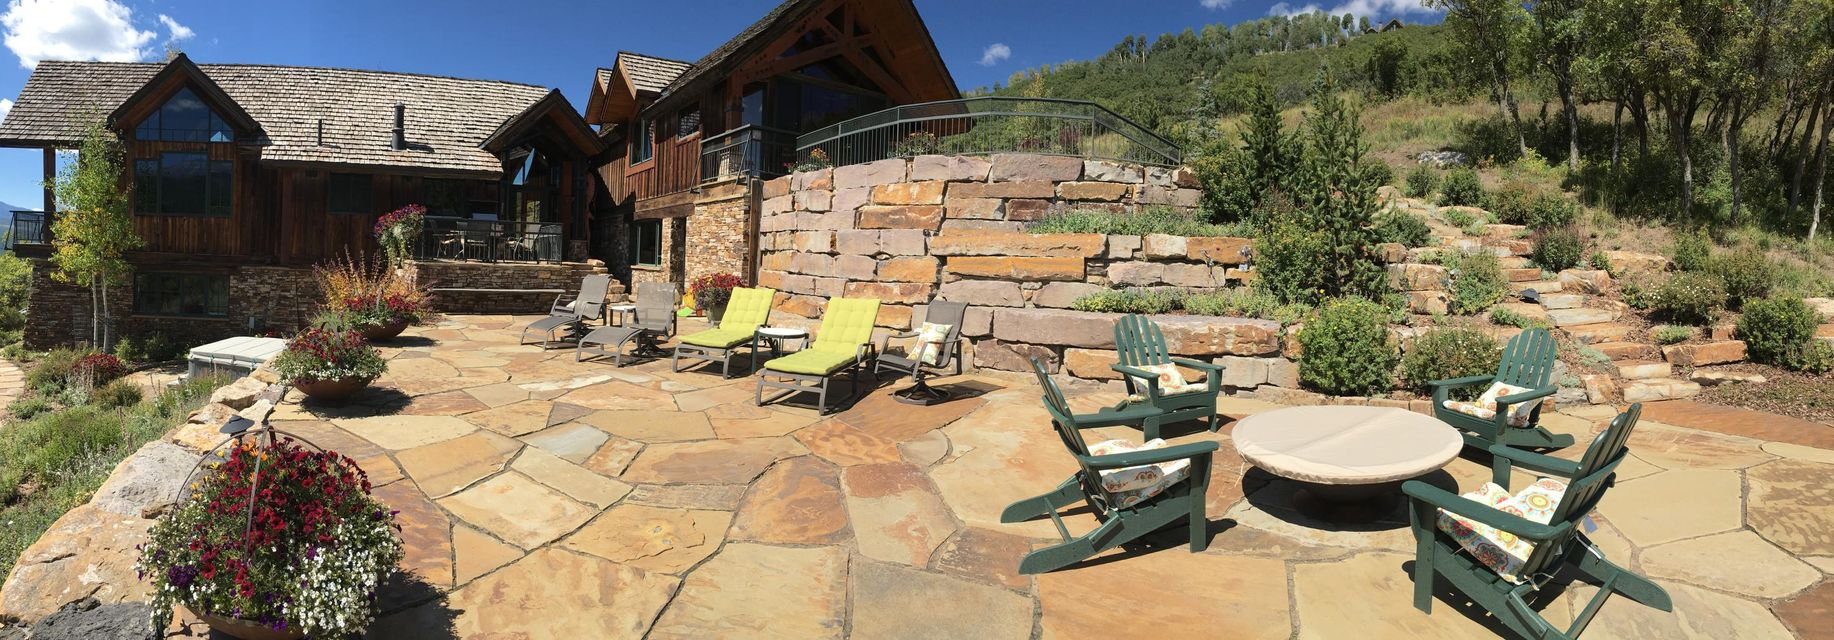 Additional photo for property listing at 110 BERNARDO Drive  Telluride, Colorado,81435 Estados Unidos